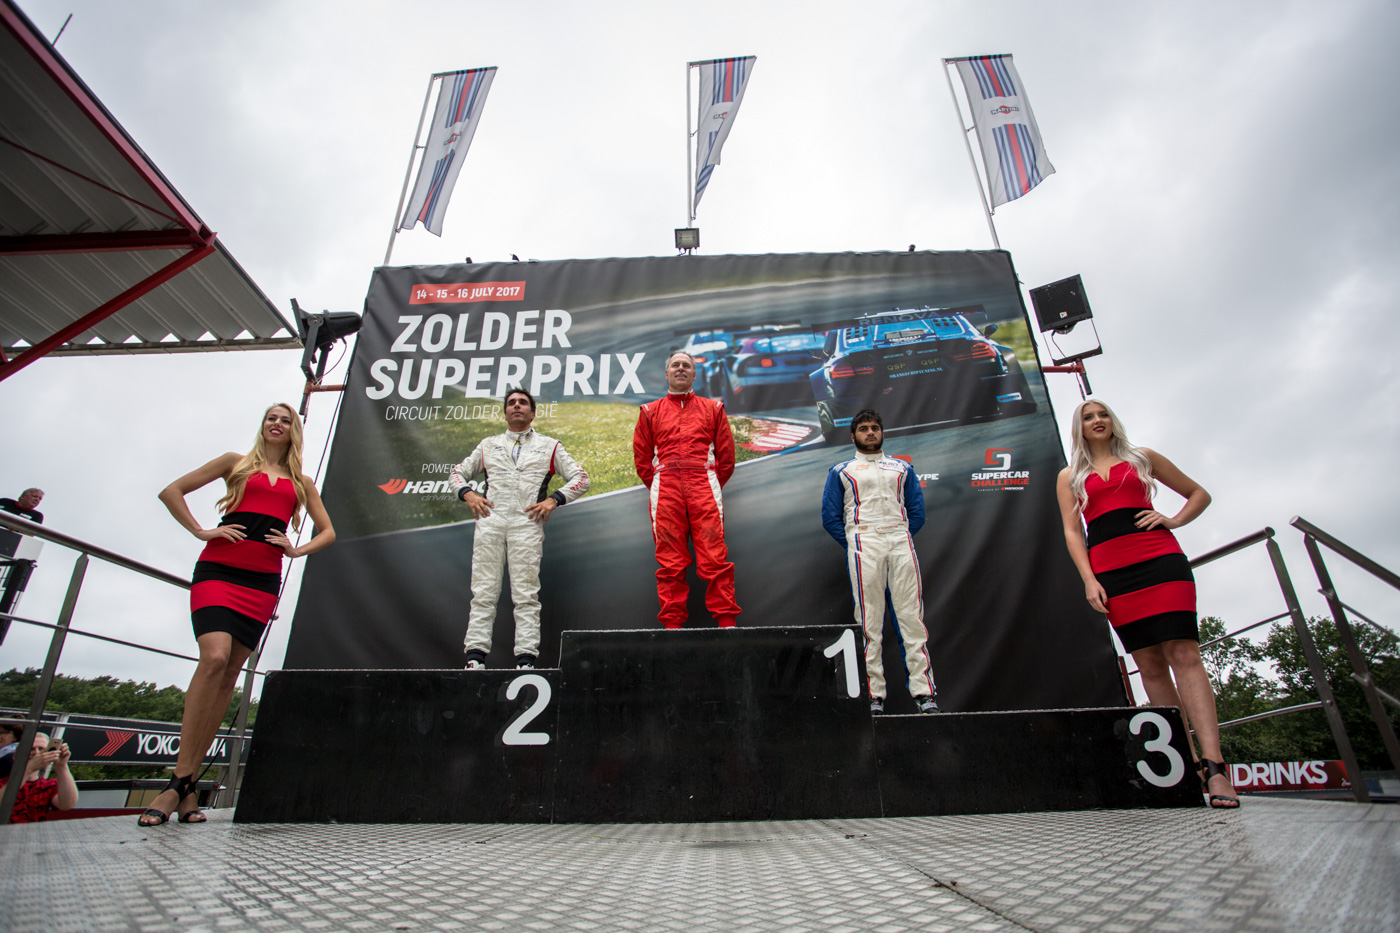 Podium of race 2 at Zolder 2017.